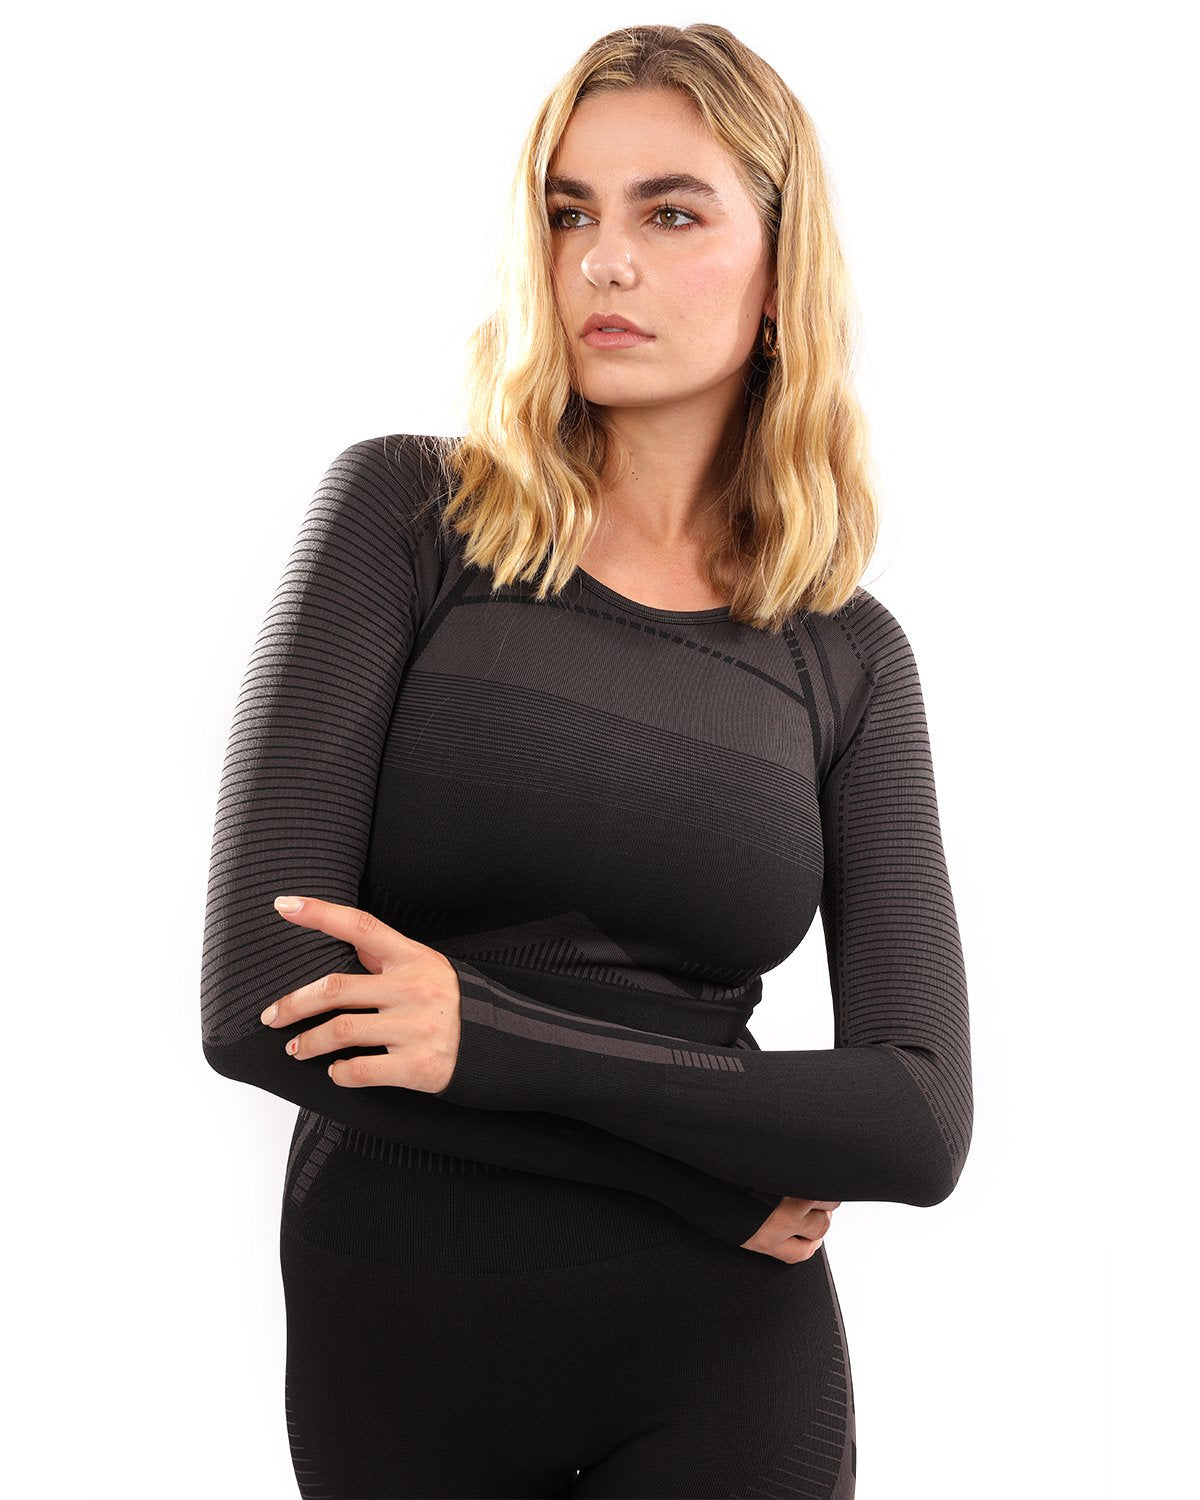 Decata Seamless Sports Top - Black & Brown